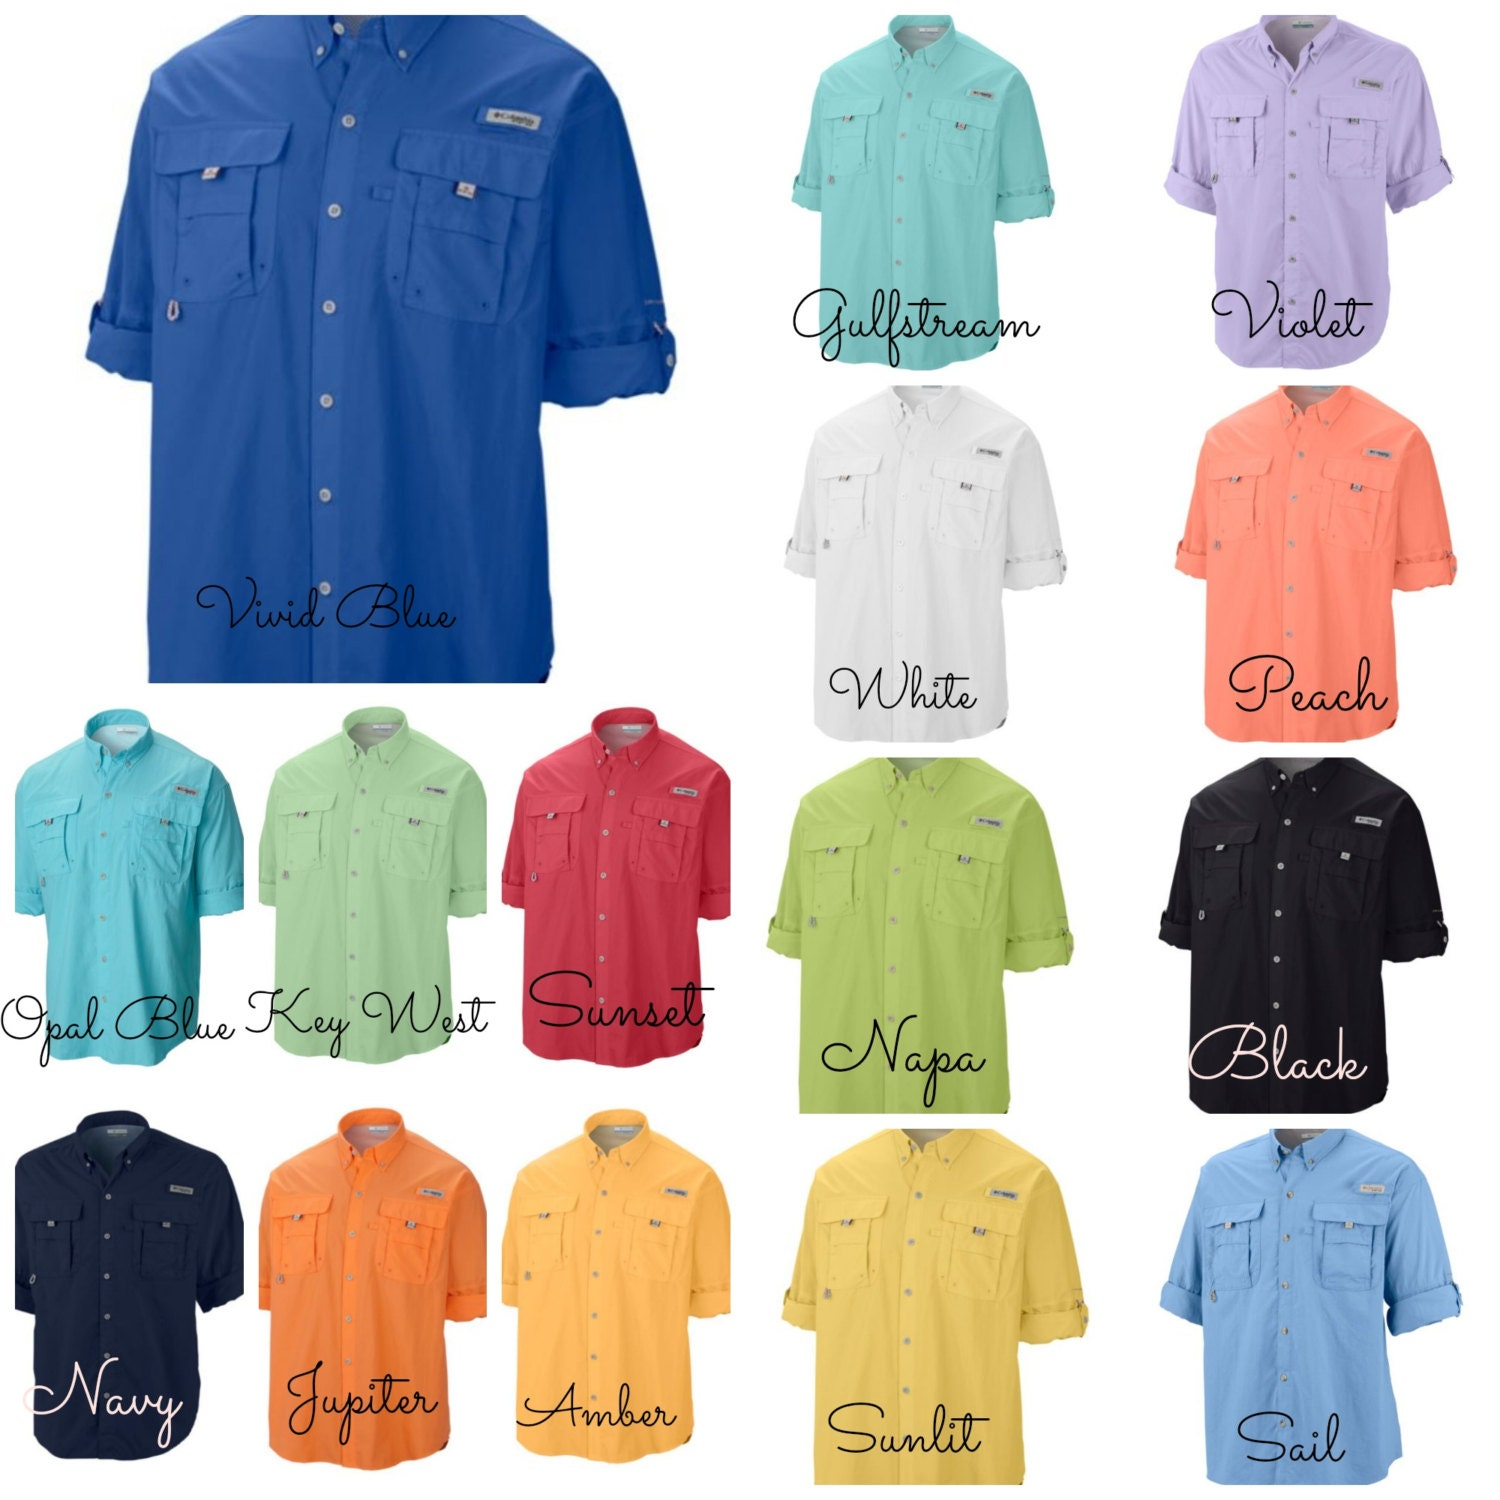 4065b3d910 Monogrammed women's fishing shirt- cover up!!